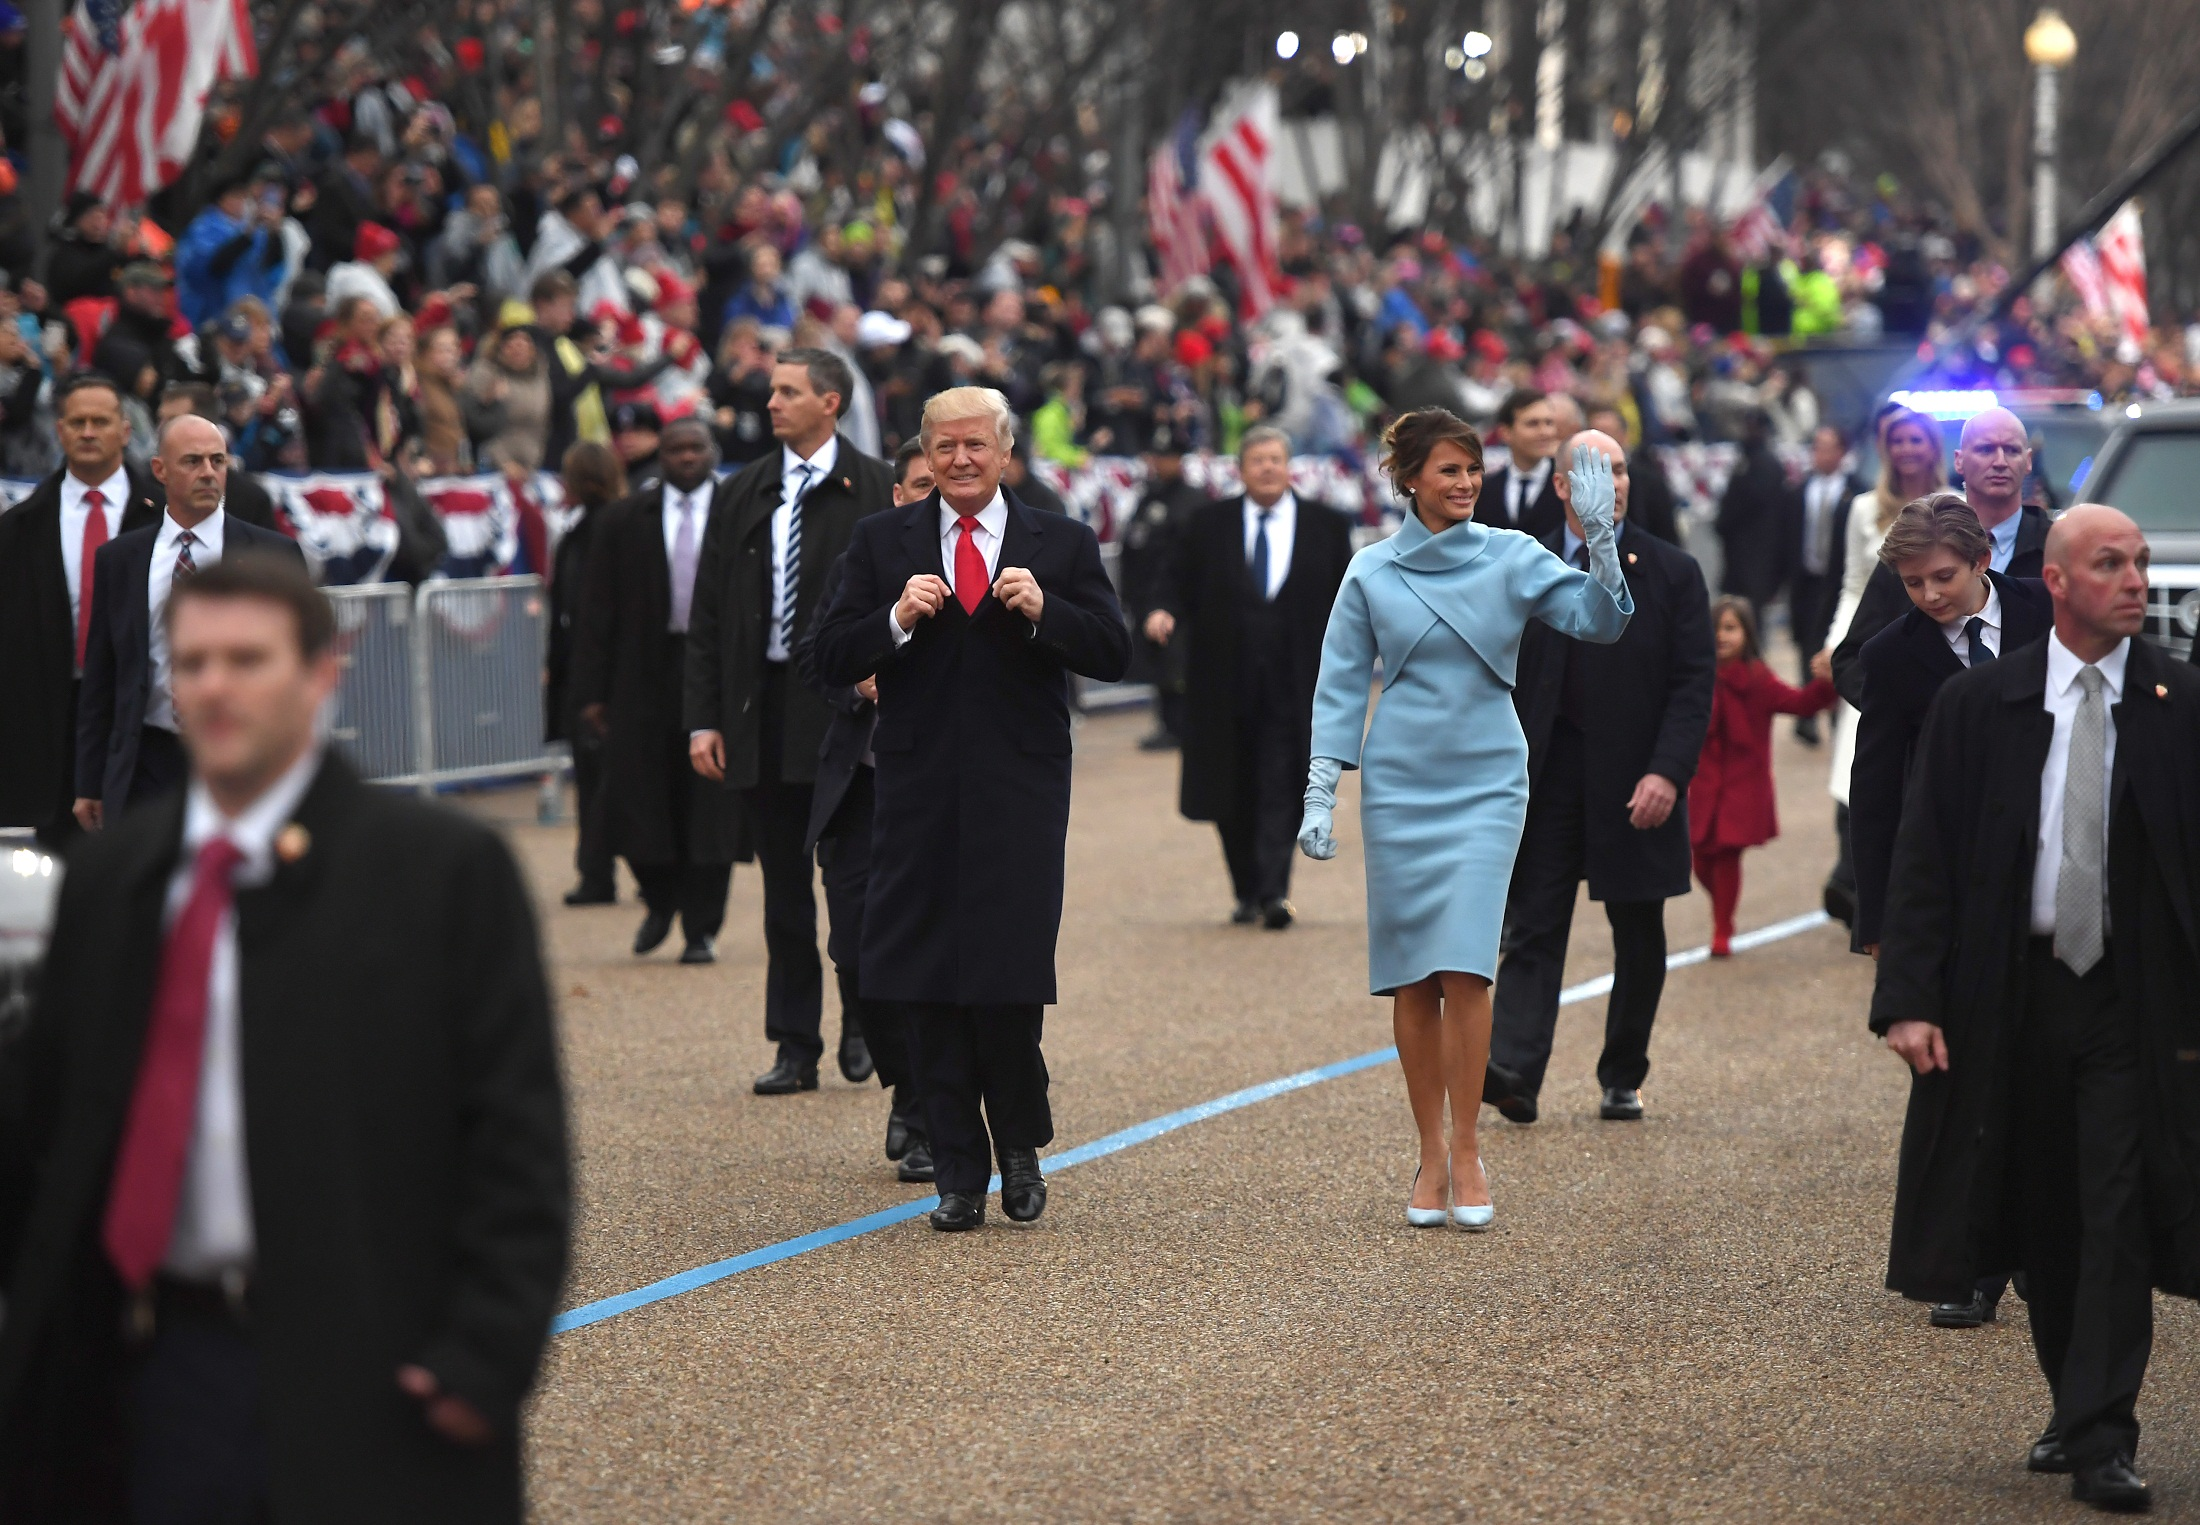 US President Donald Trump and First Lady Melania walk the inaugural parade route on Pennsylvania Avenue in Washington, DC, on January 20, 2107 following swearing-in ceremonies on Capitol Hill earlier today.  / AFP PHOTO / JIM WATSON